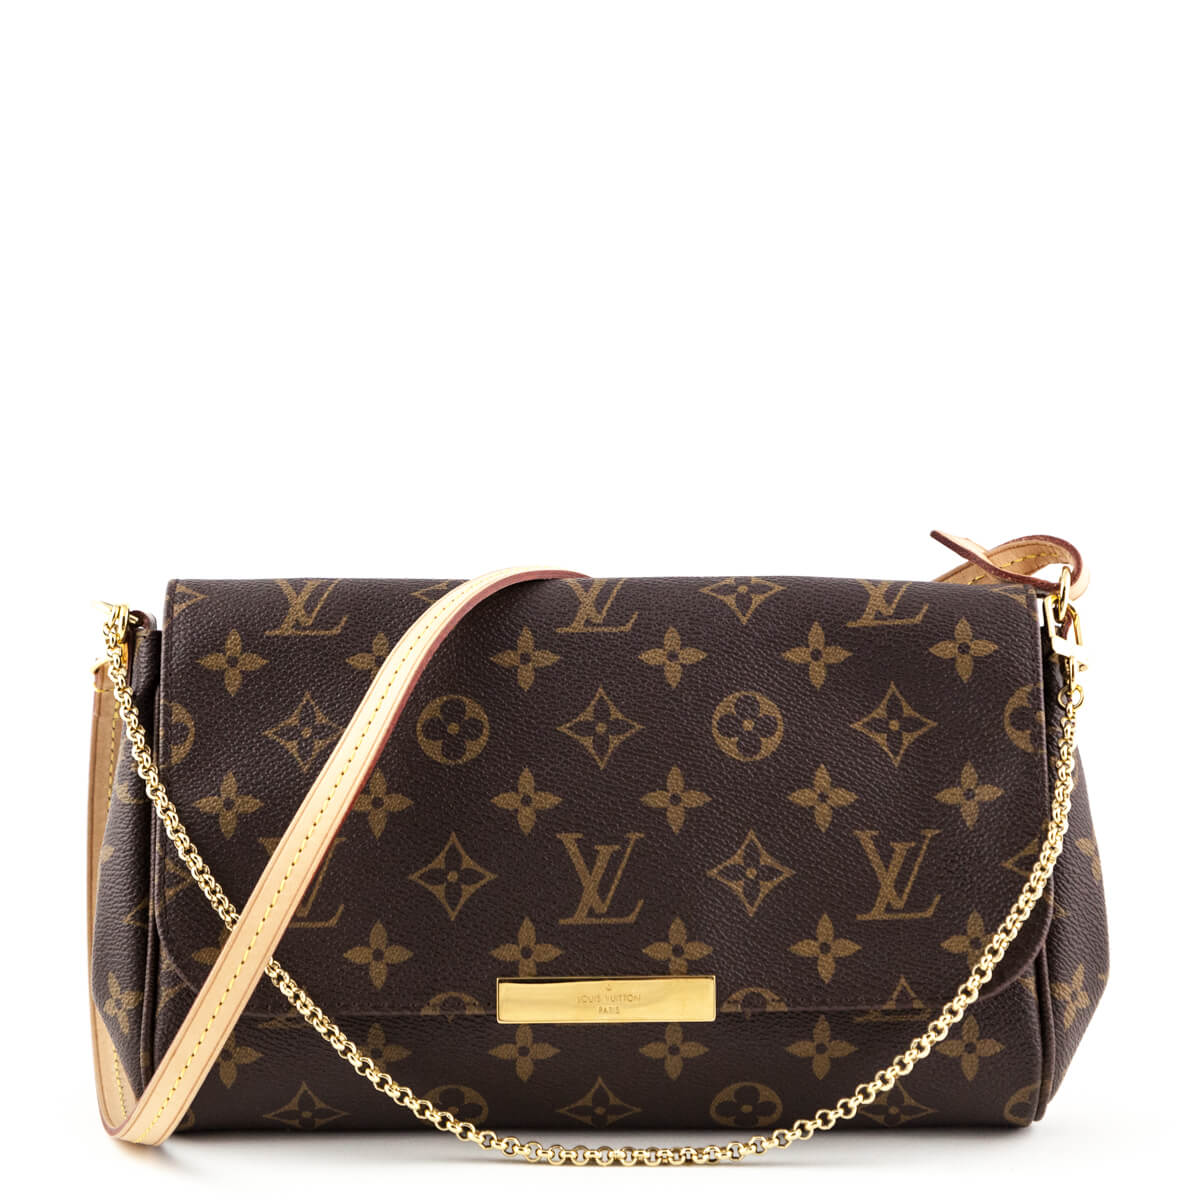 2b12db45283d Louis Vuitton Monogram Favorite MM - LOVE that BAG - Preowned Authentic Designer  Handbags ...